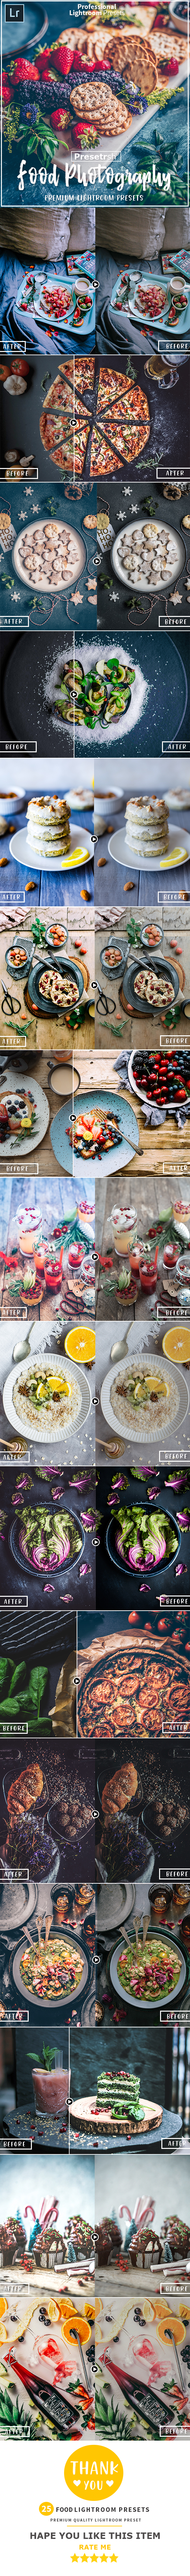 25 Food Collection Lightroom Presets - Lightroom Presets Add-ons